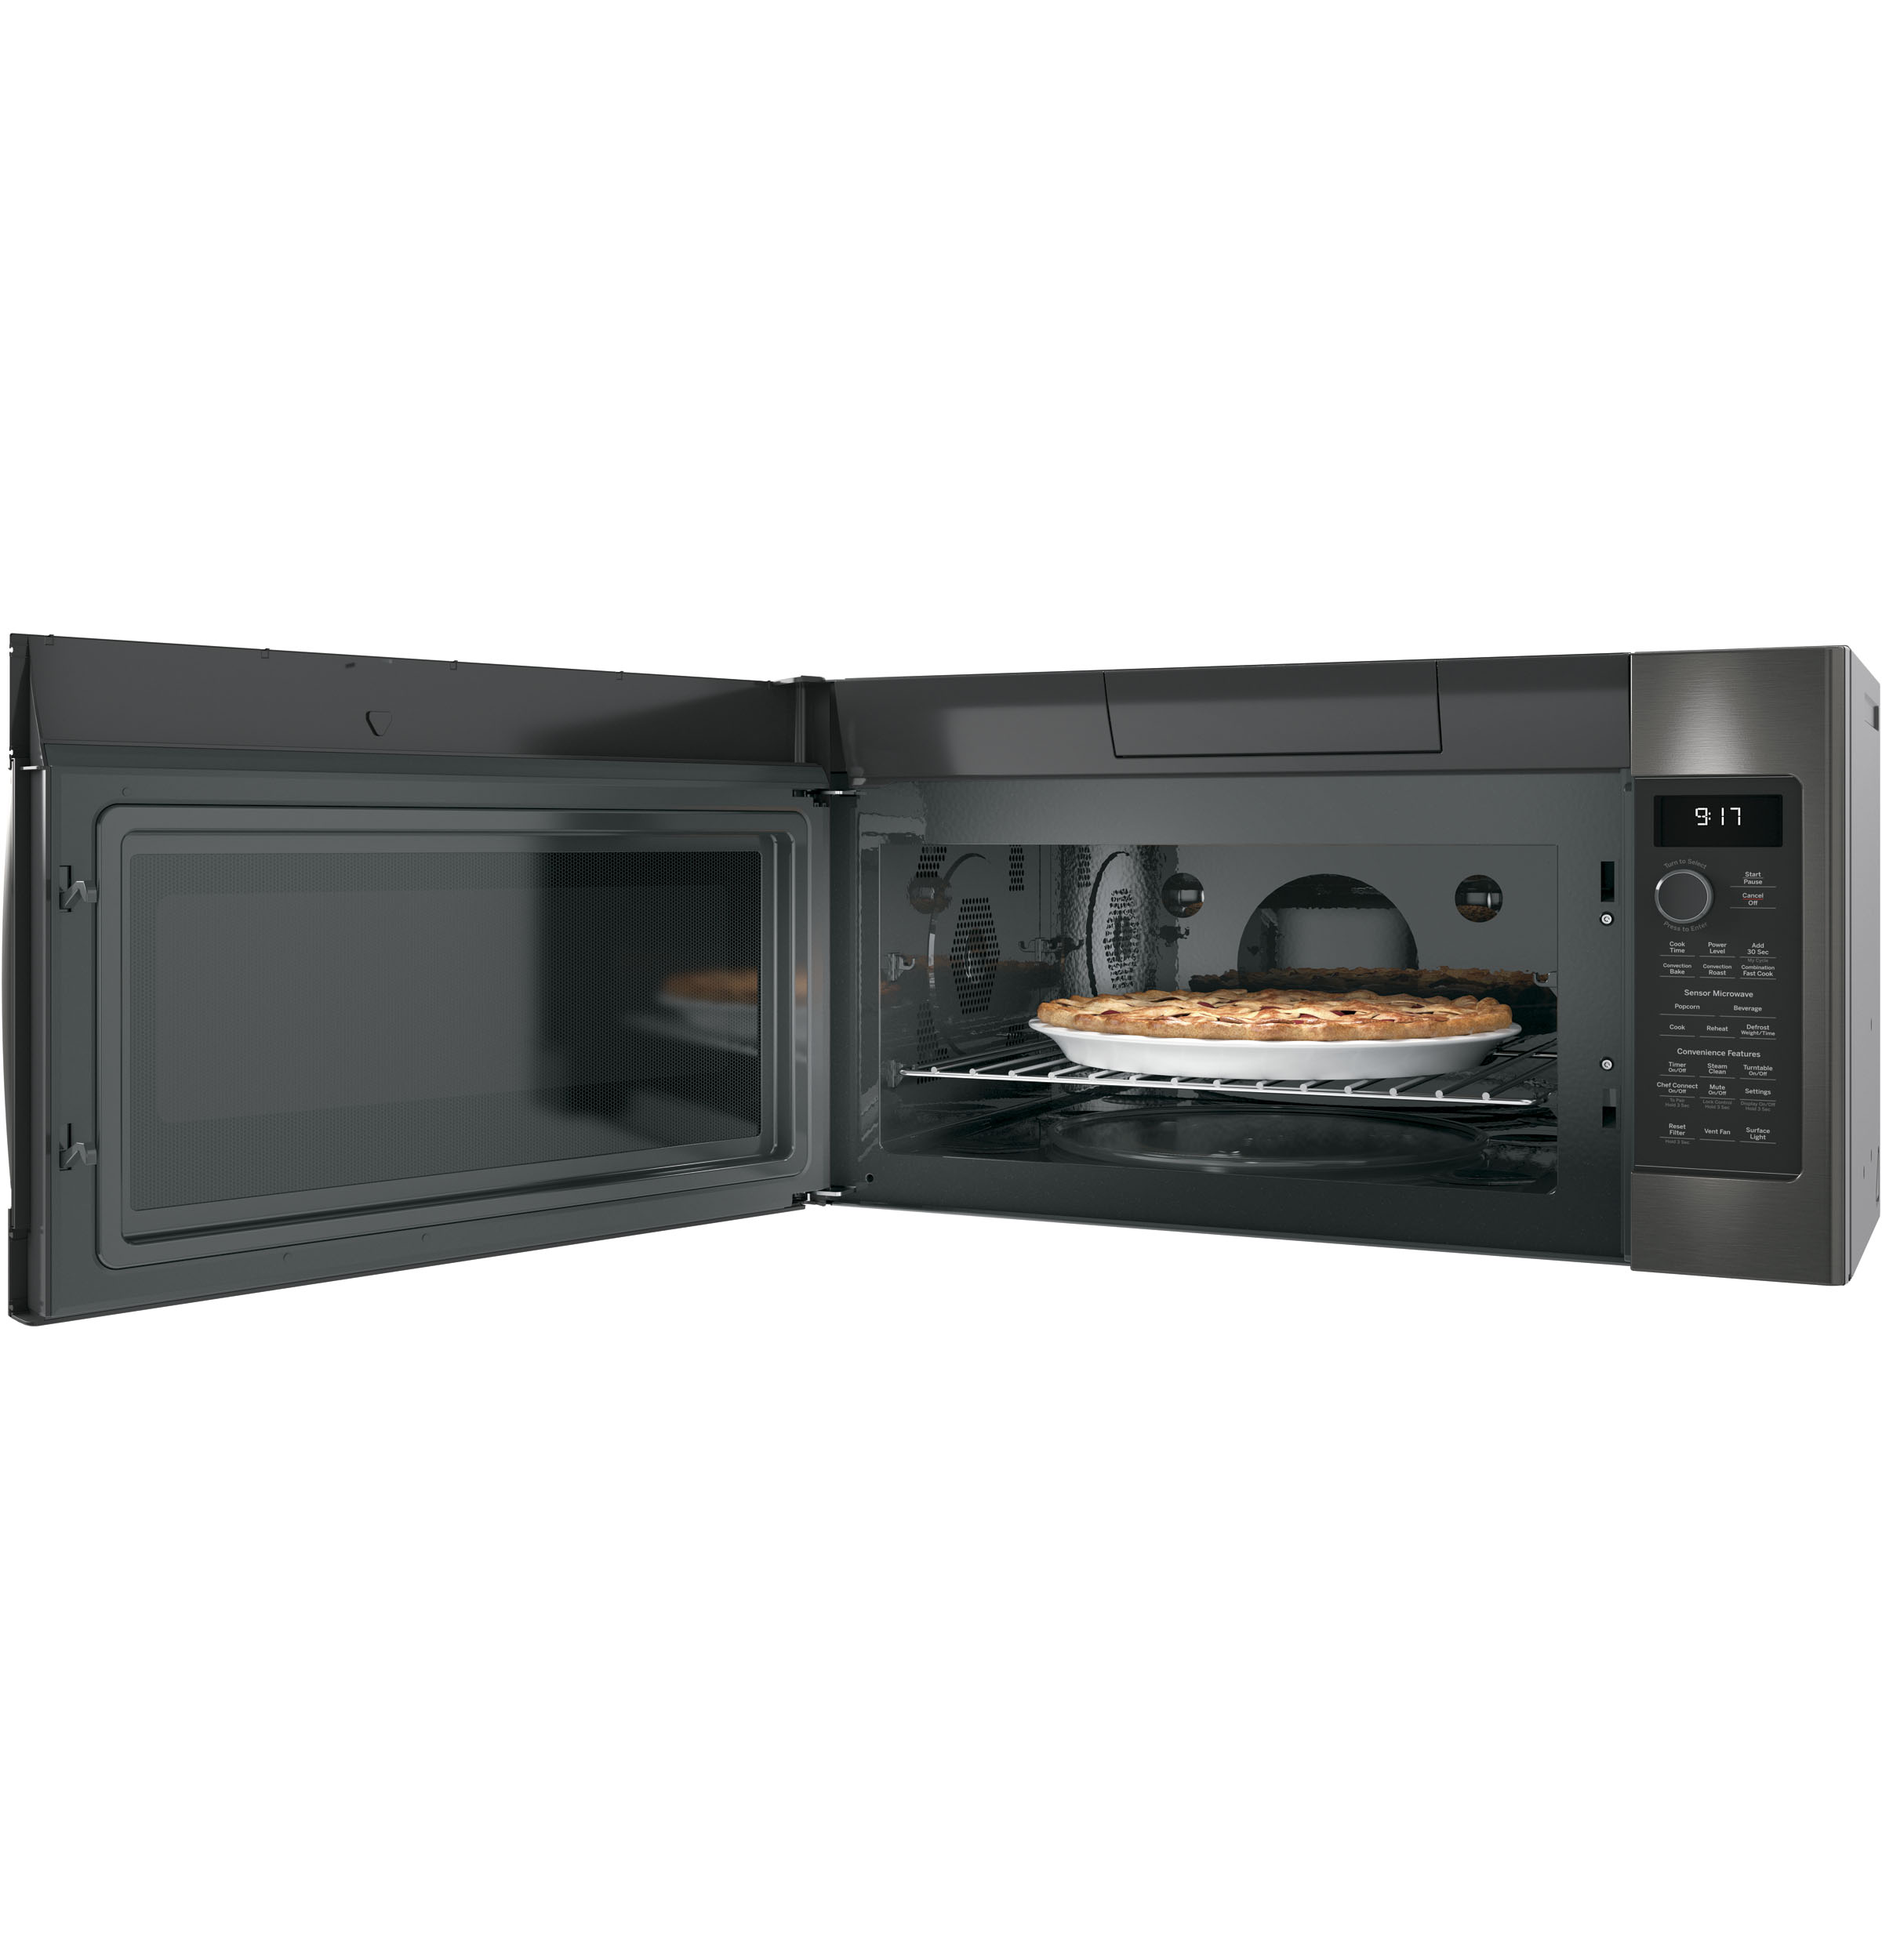 Model: PVM9179BLTS | GE Profile GE Profile™ Series 1.7 Cu. Ft. Convection Over-the-Range Microwave Oven